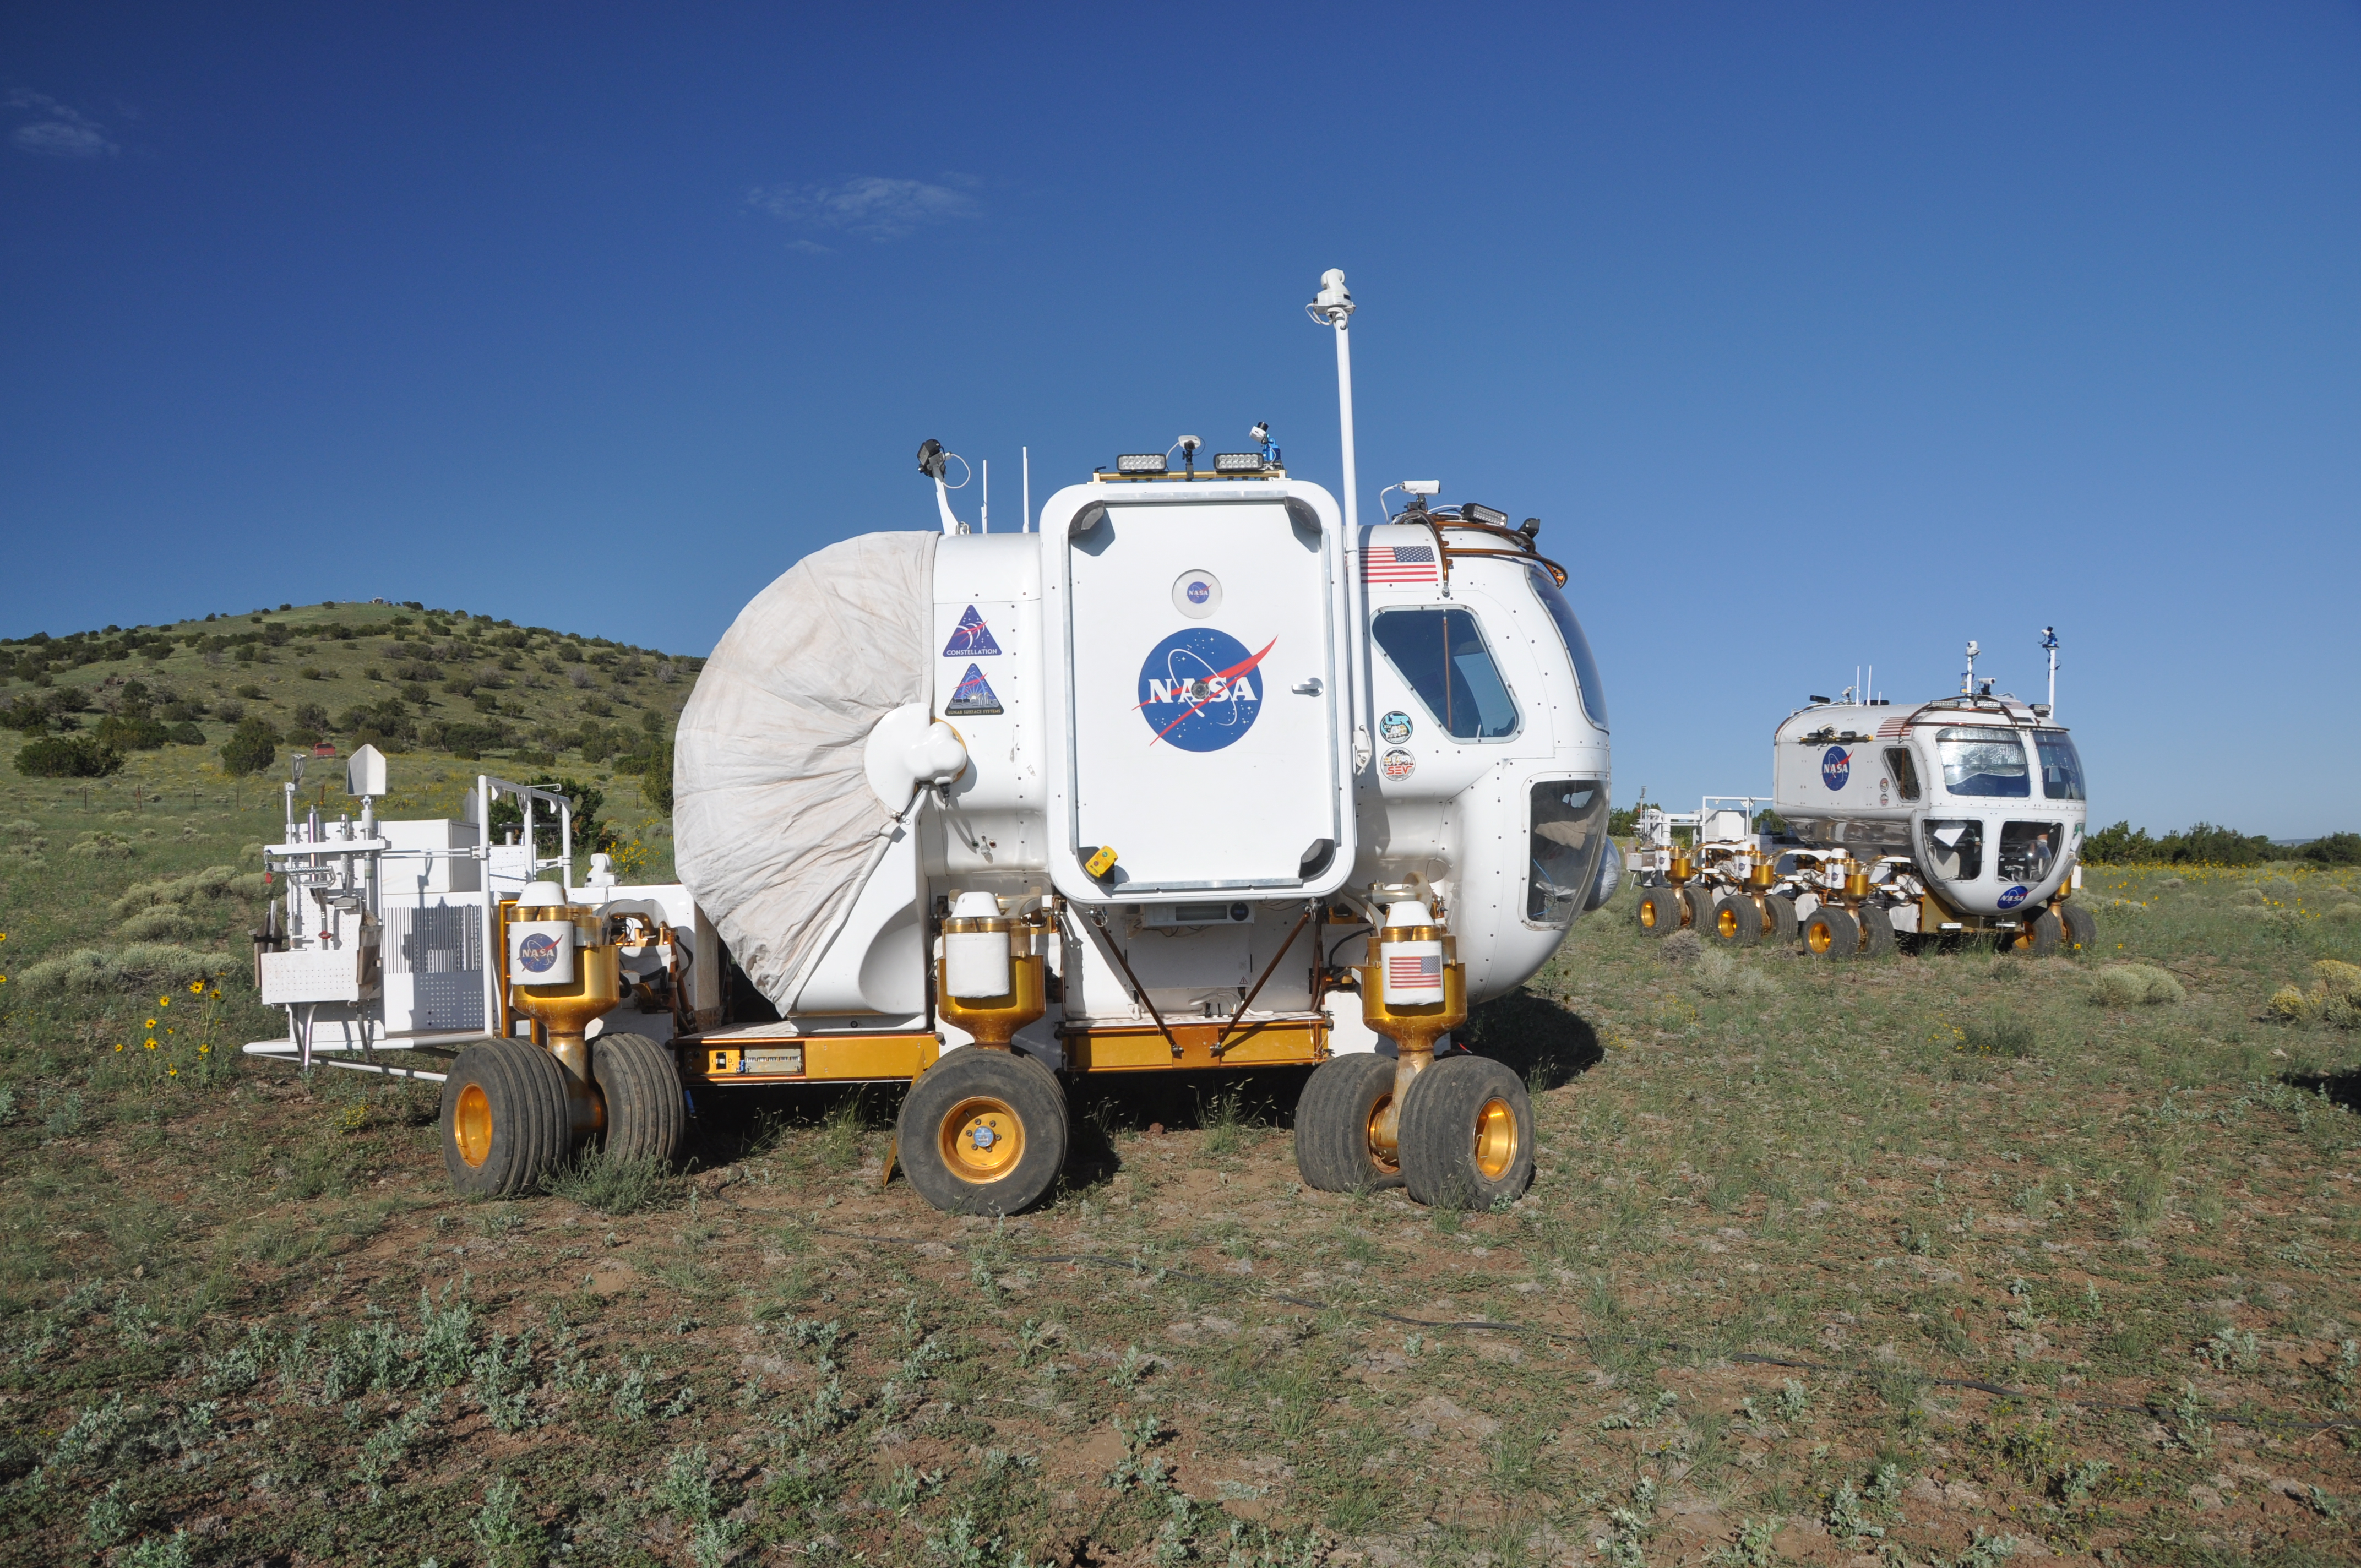 nasa space exploration vehicle - photo #1